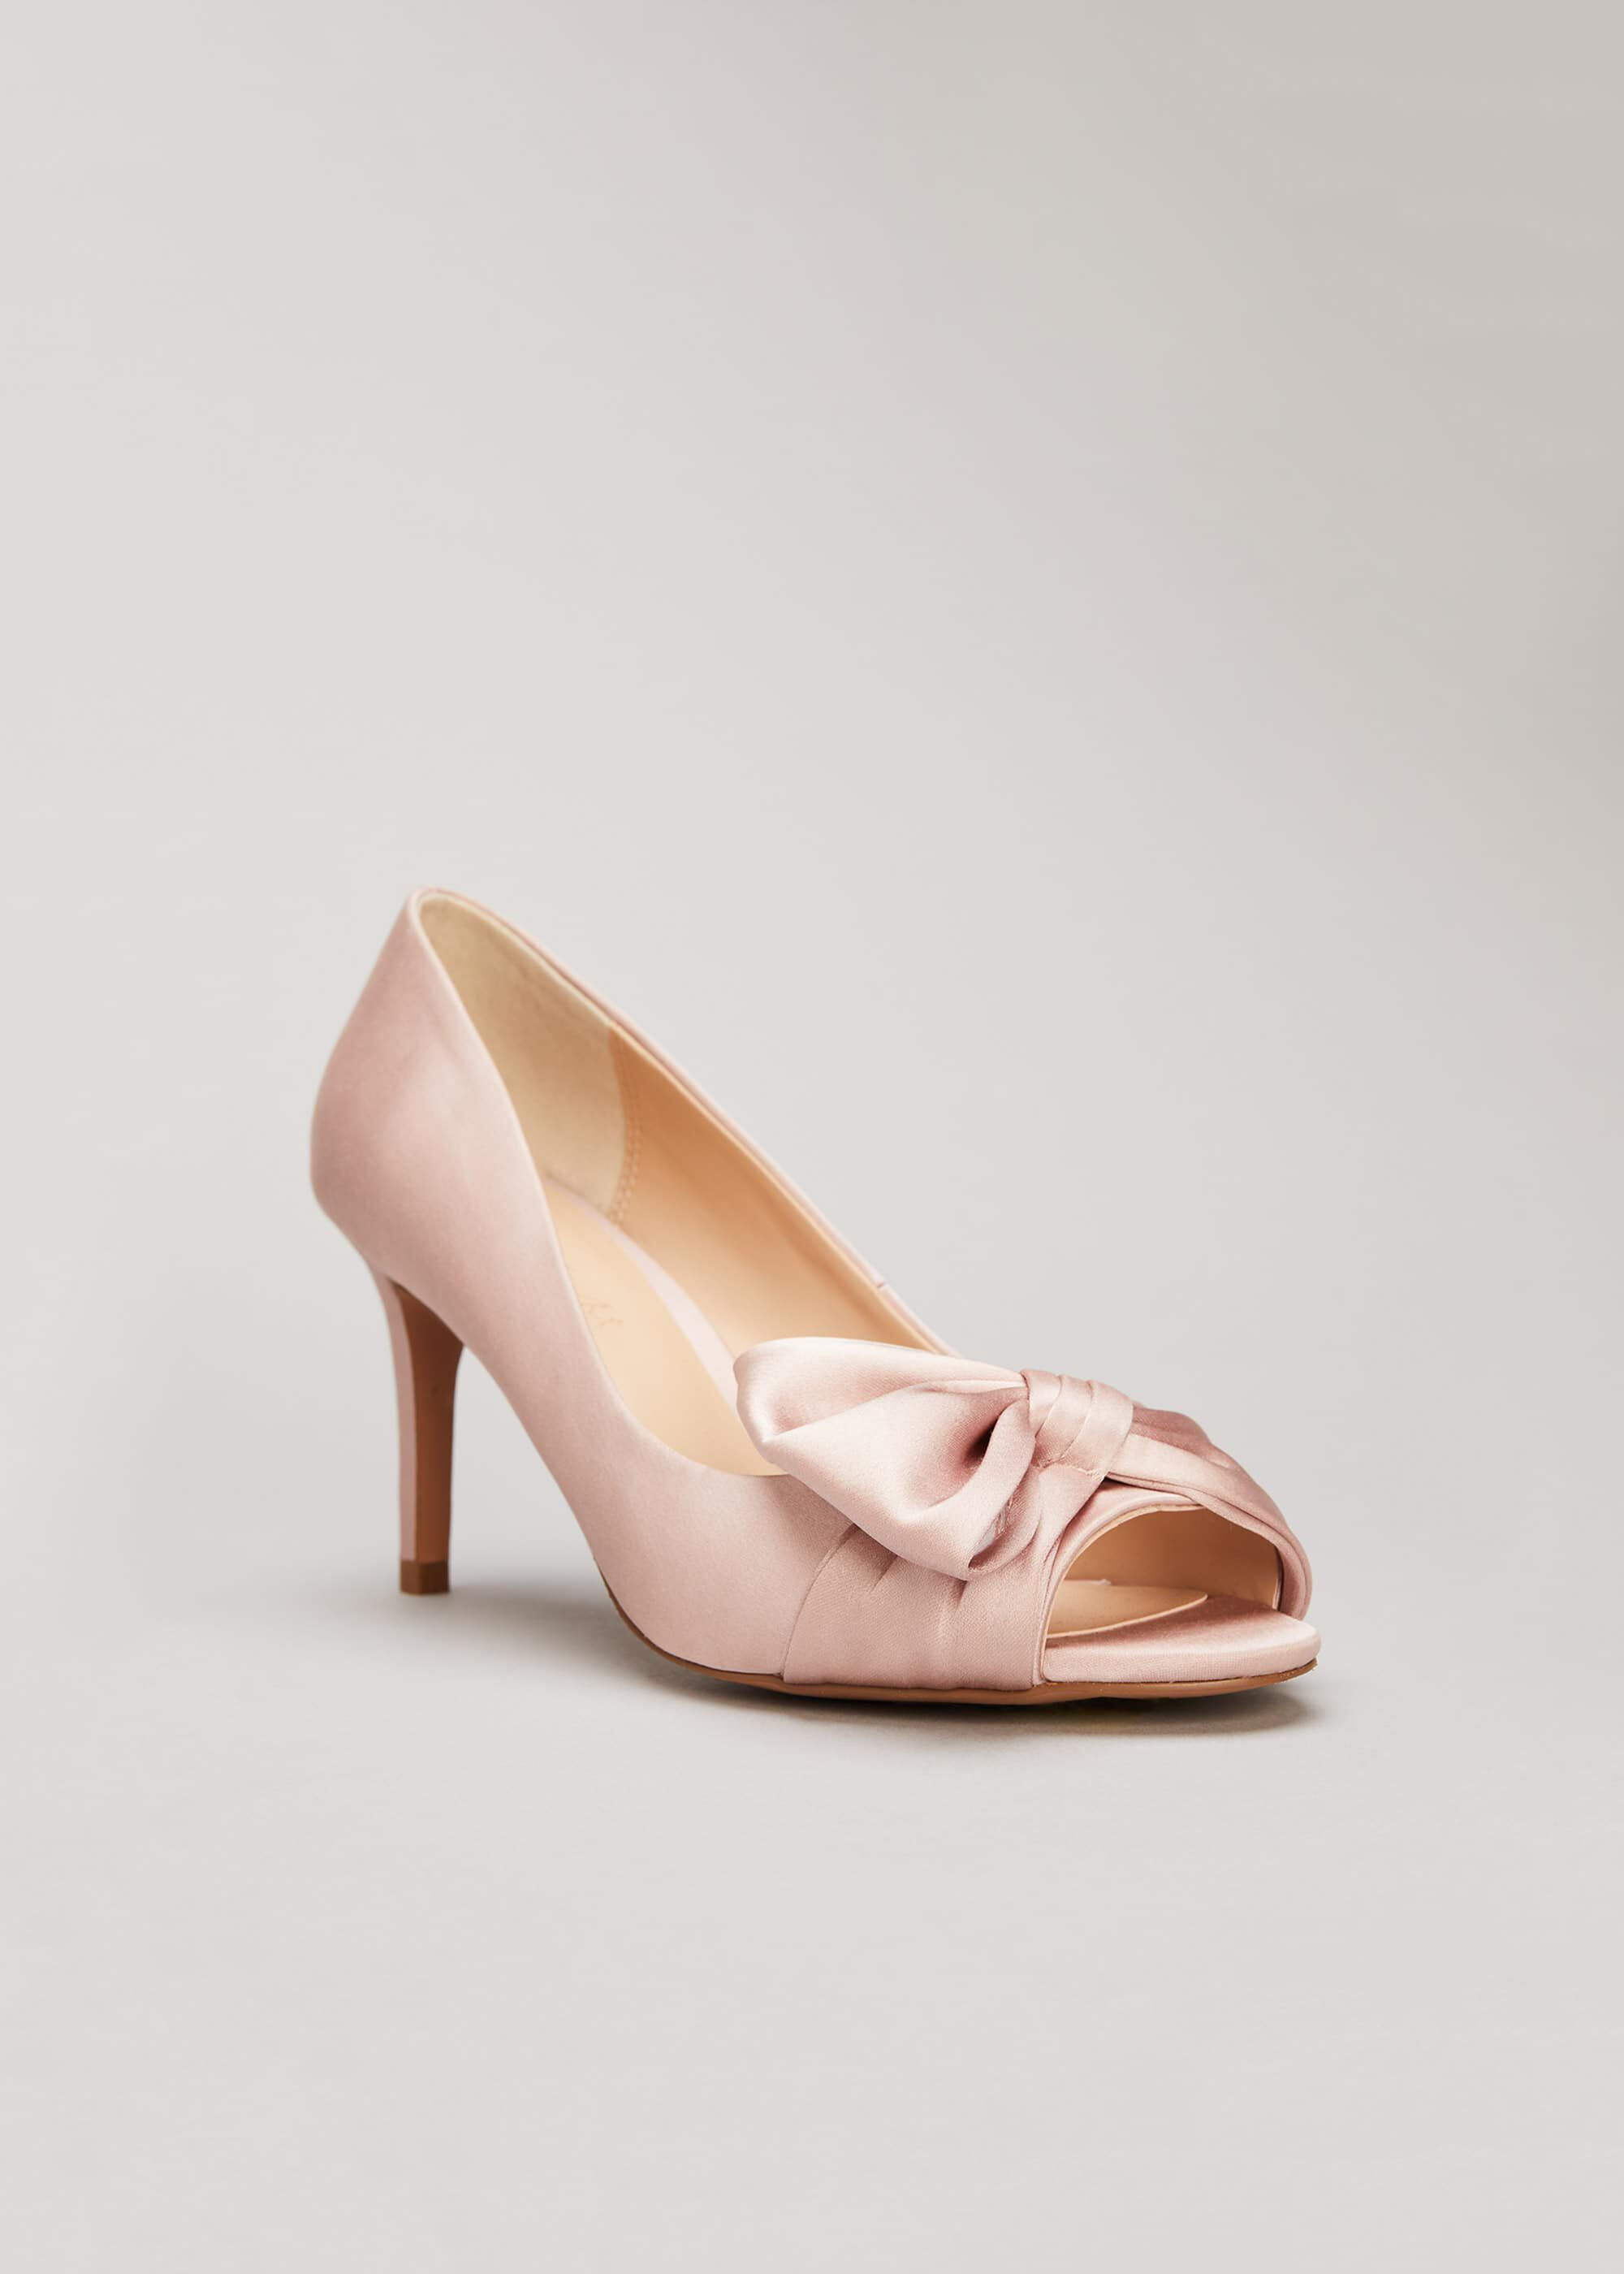 Phase Eight Meaghan Satin Bow Peep Toe, Pink, High Heels